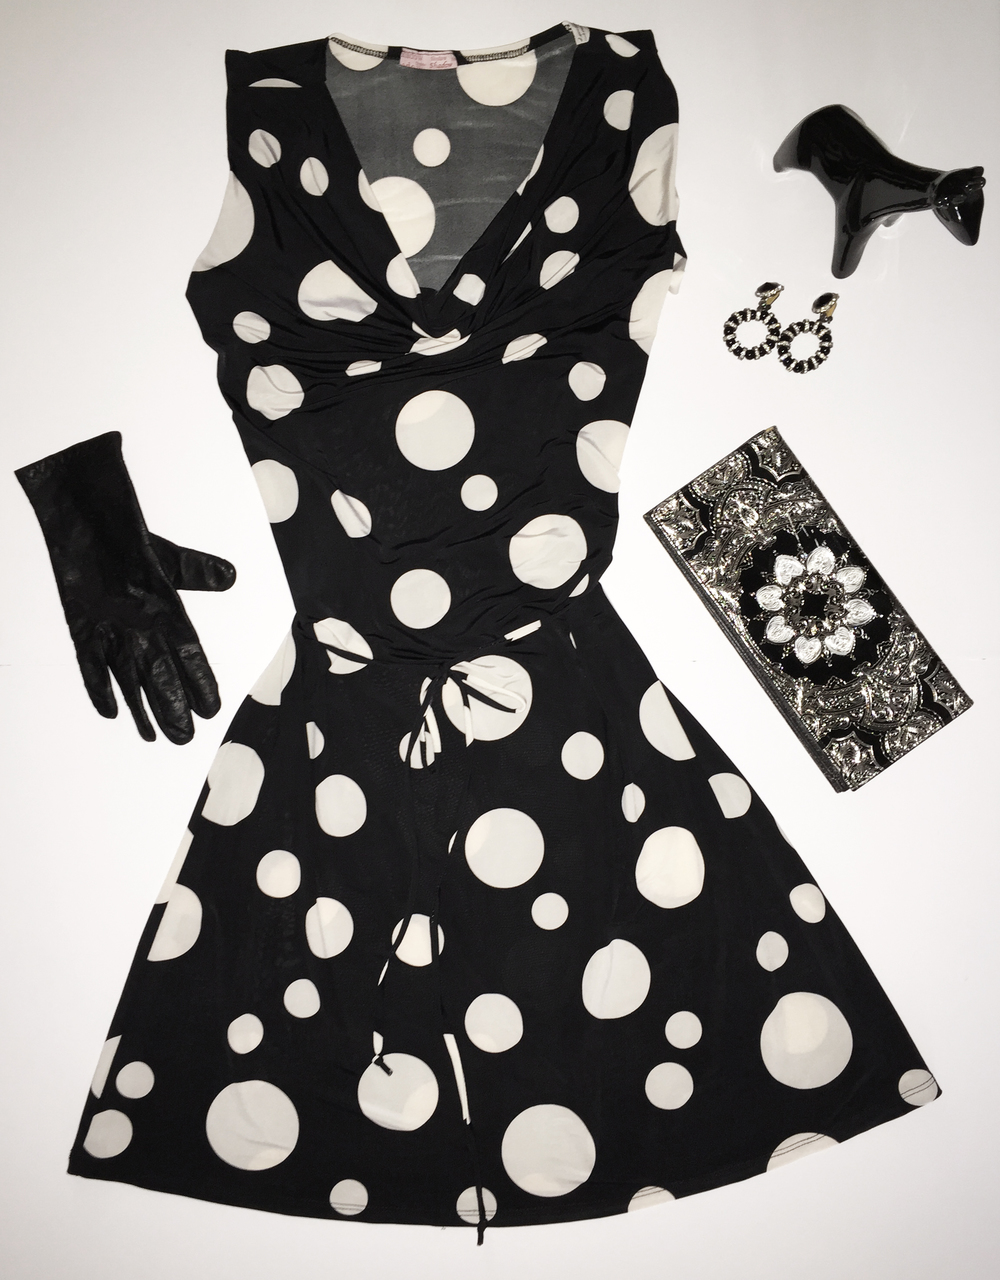 Vintage-Polka Dot dress.jpg